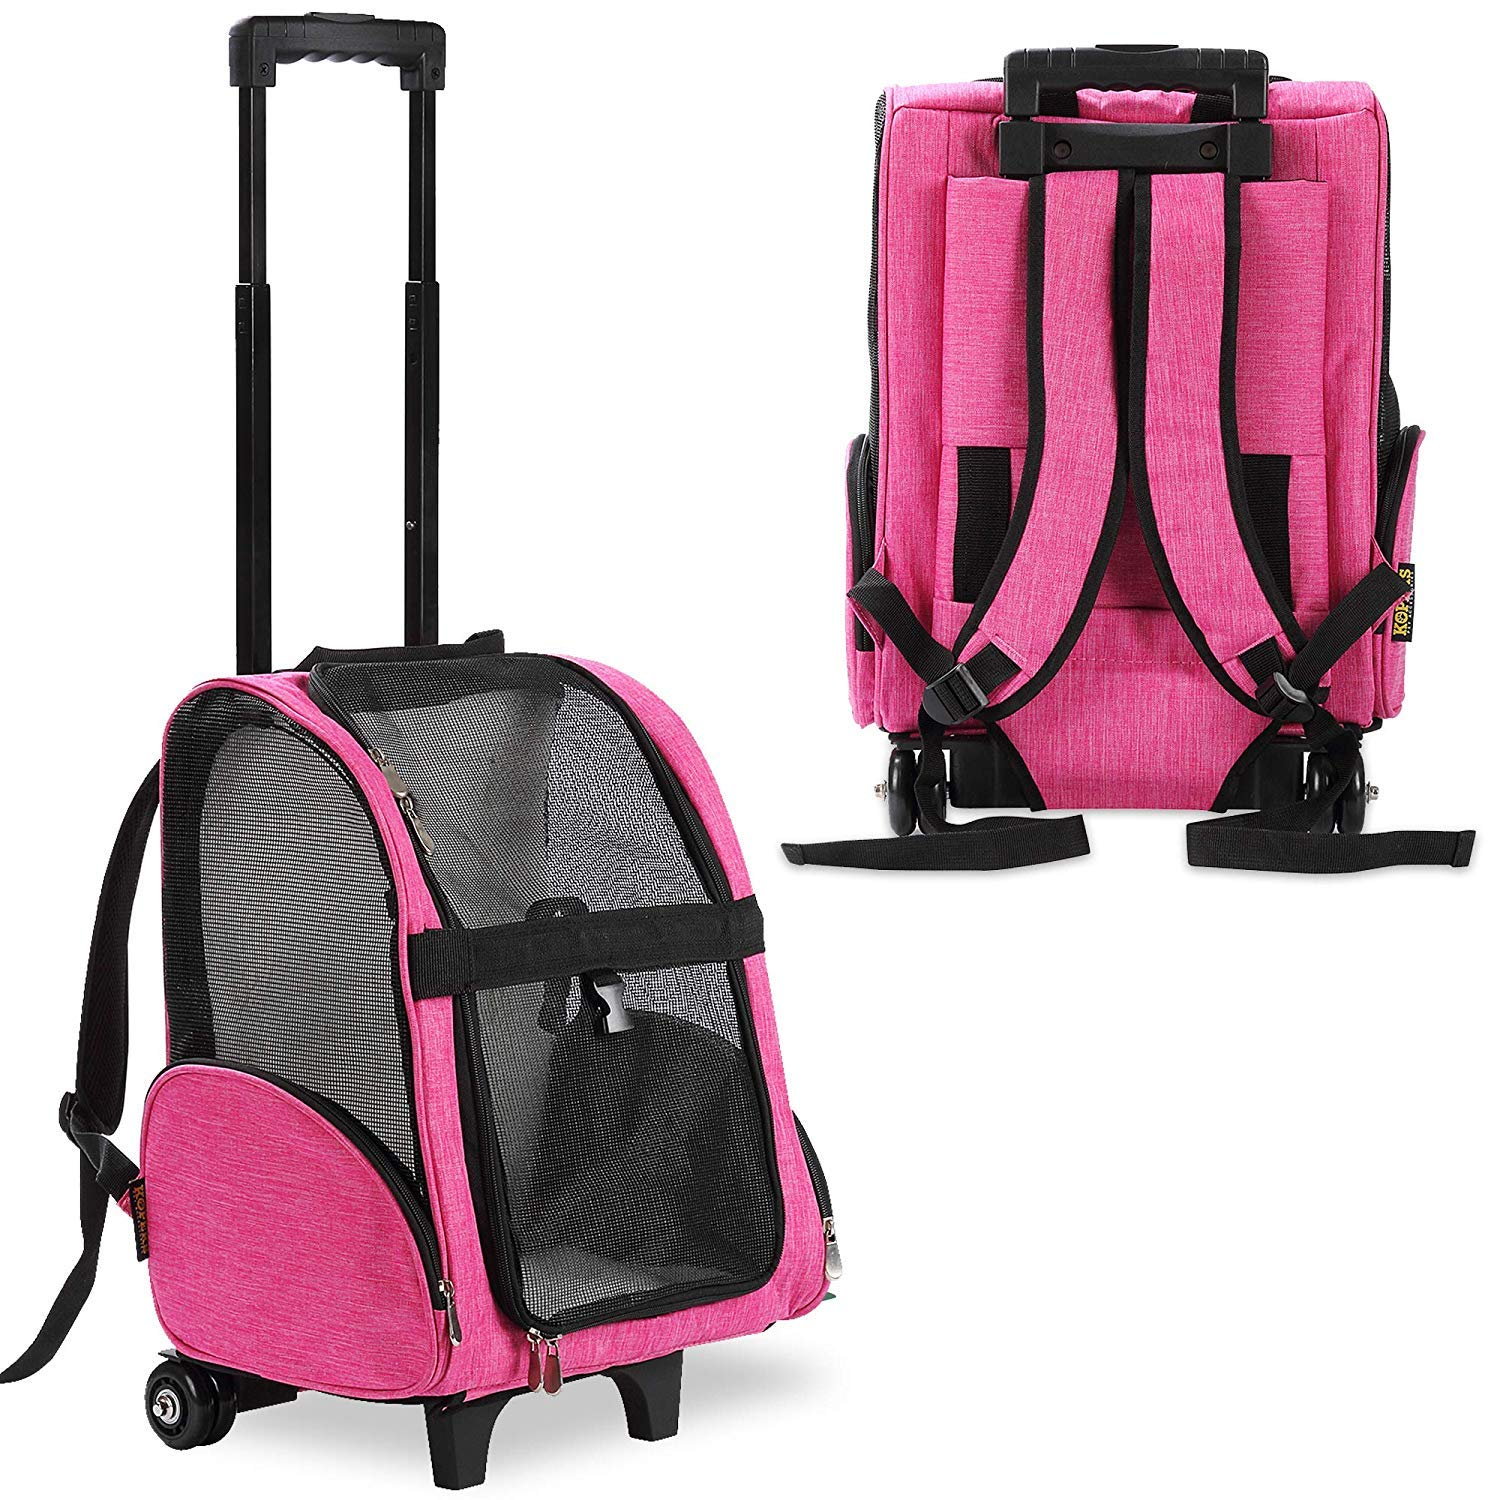 Deluxe Backpack Pet Travel Carrier with Double Wheels Heather Pink Approved by Most Airlines